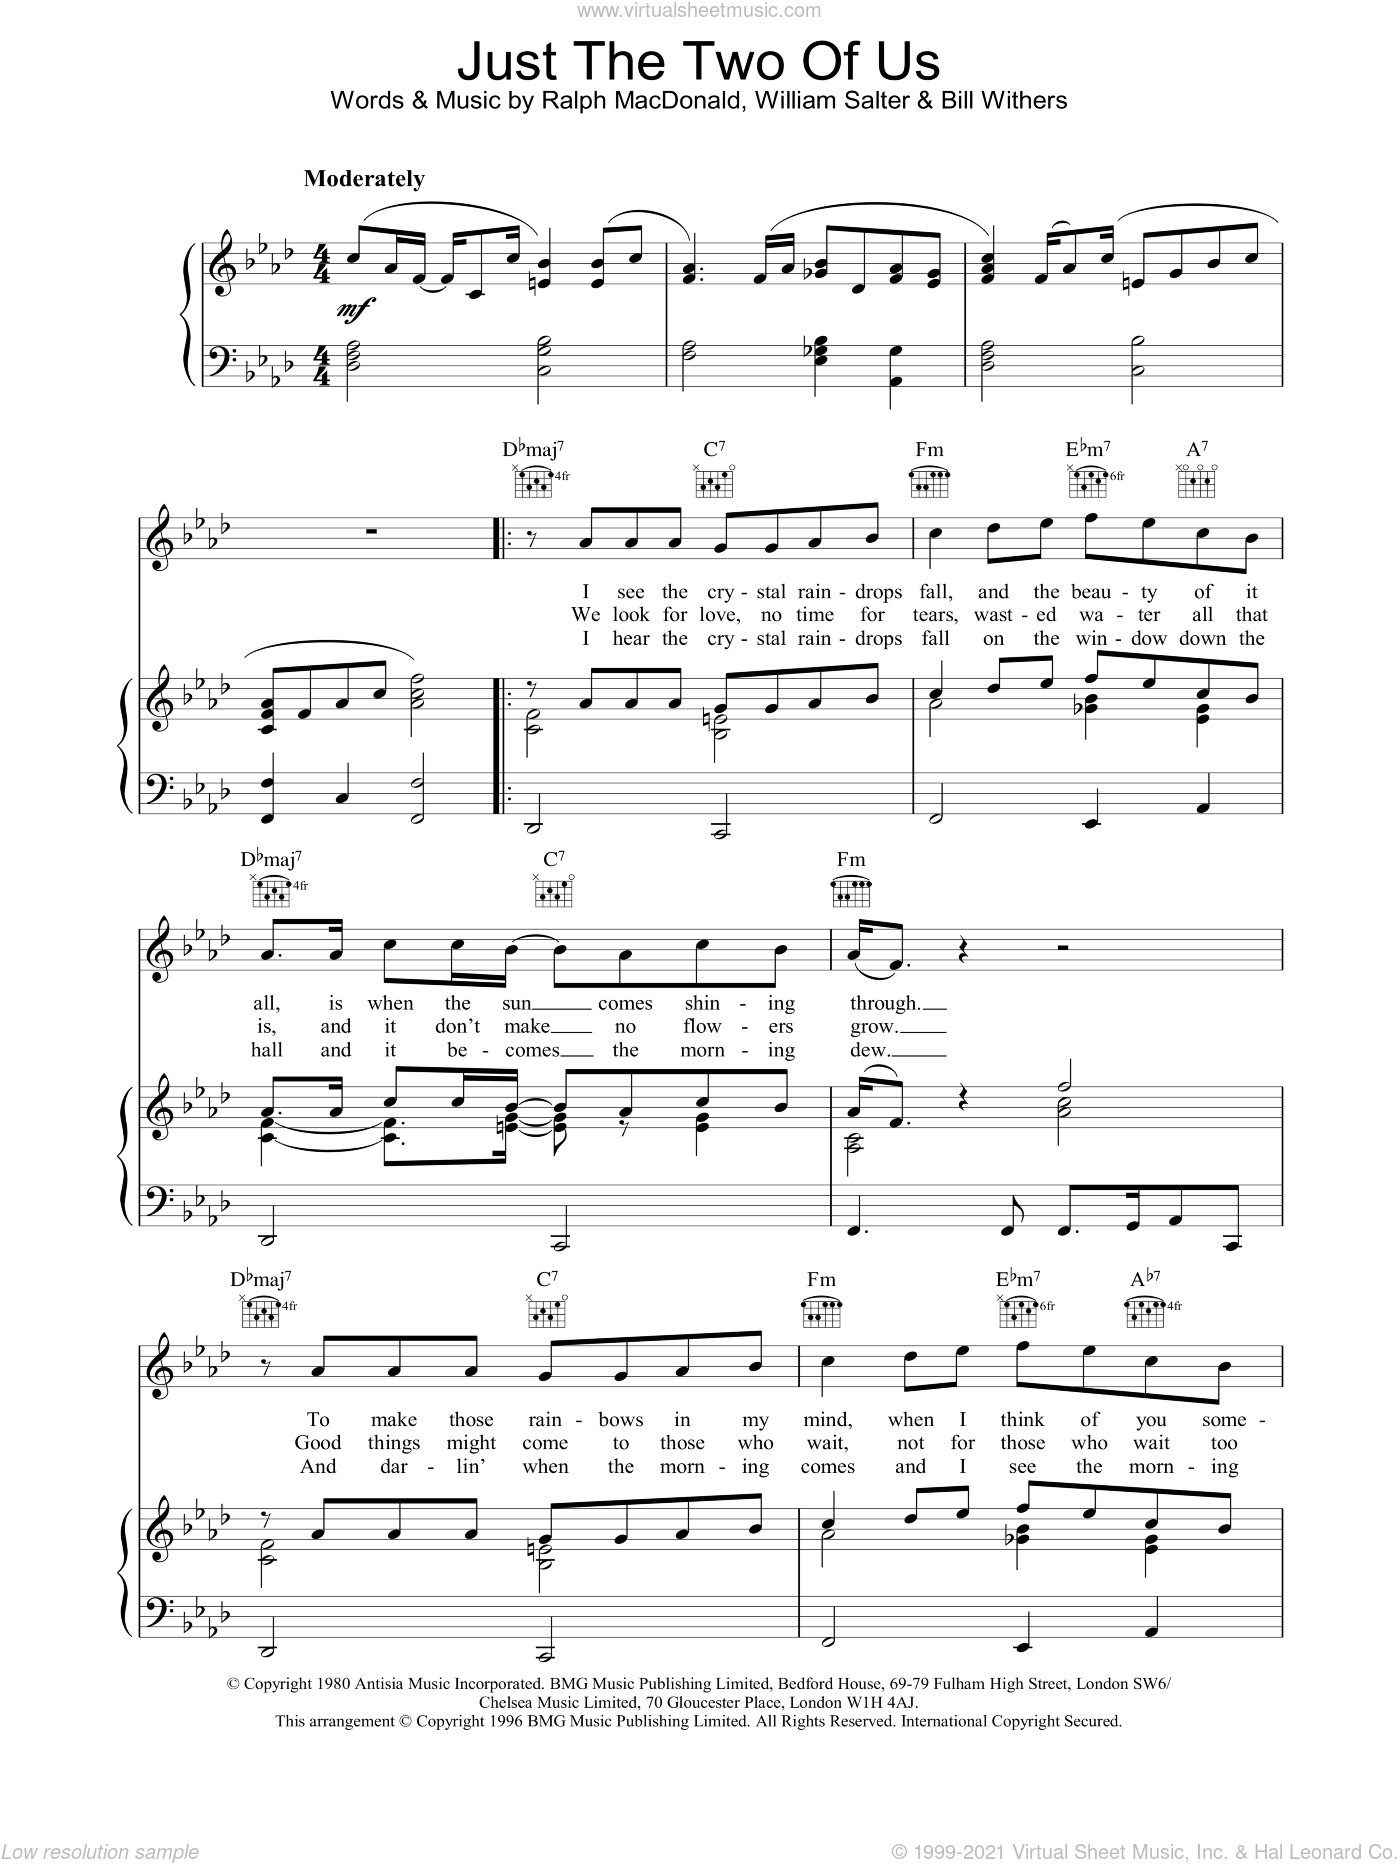 Just The Two Of Us sheet music for voice, piano or guitar by Grover Washington Jr. and Bill Withers, wedding score, intermediate skill level